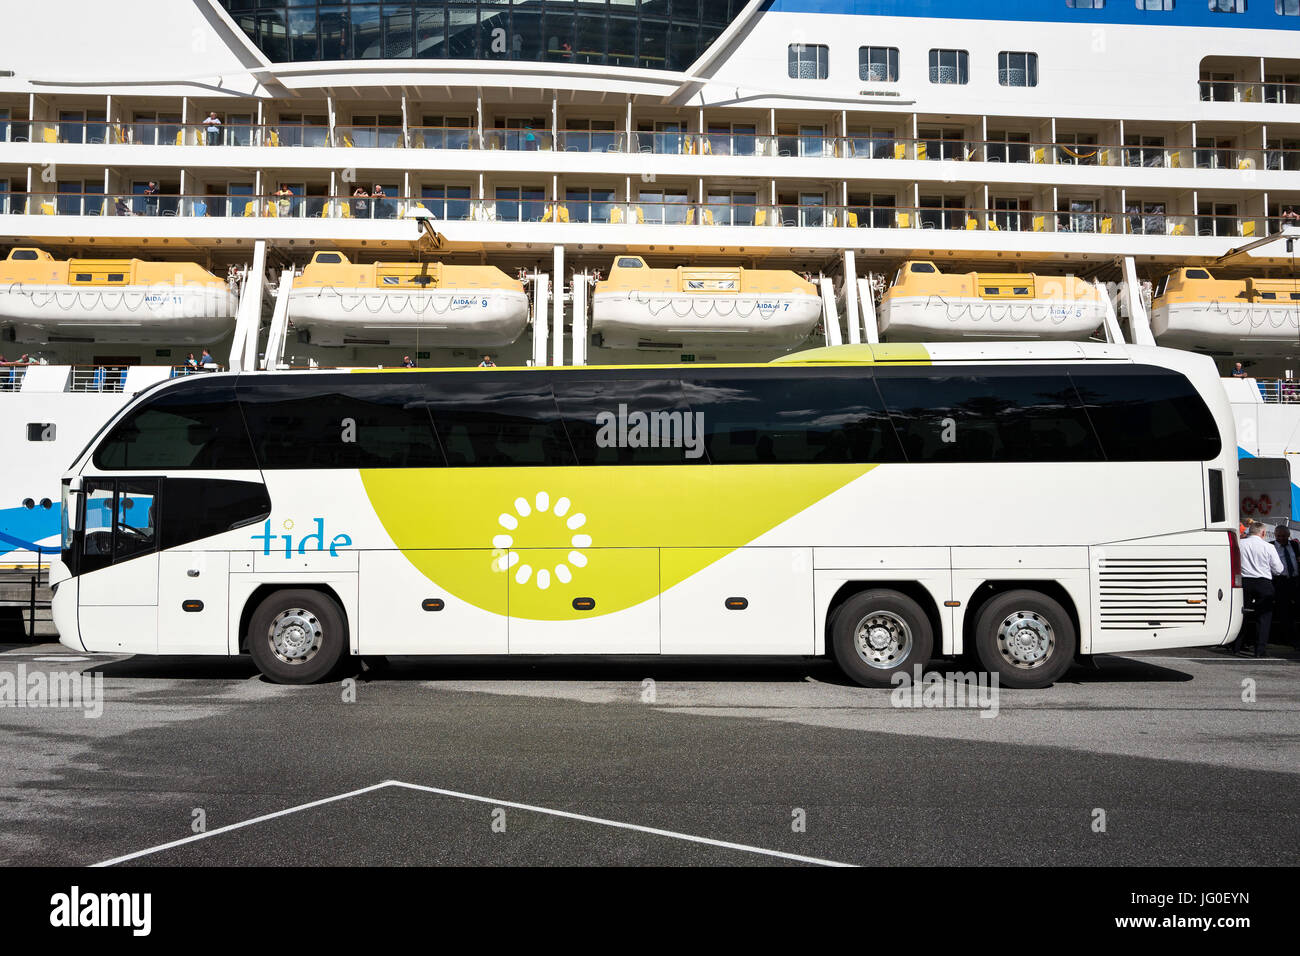 Neoplan Cityliner of tide ASA waiting at AIDAsol for shore excursion passengers. Tide is one of the largest coach - Stock Image